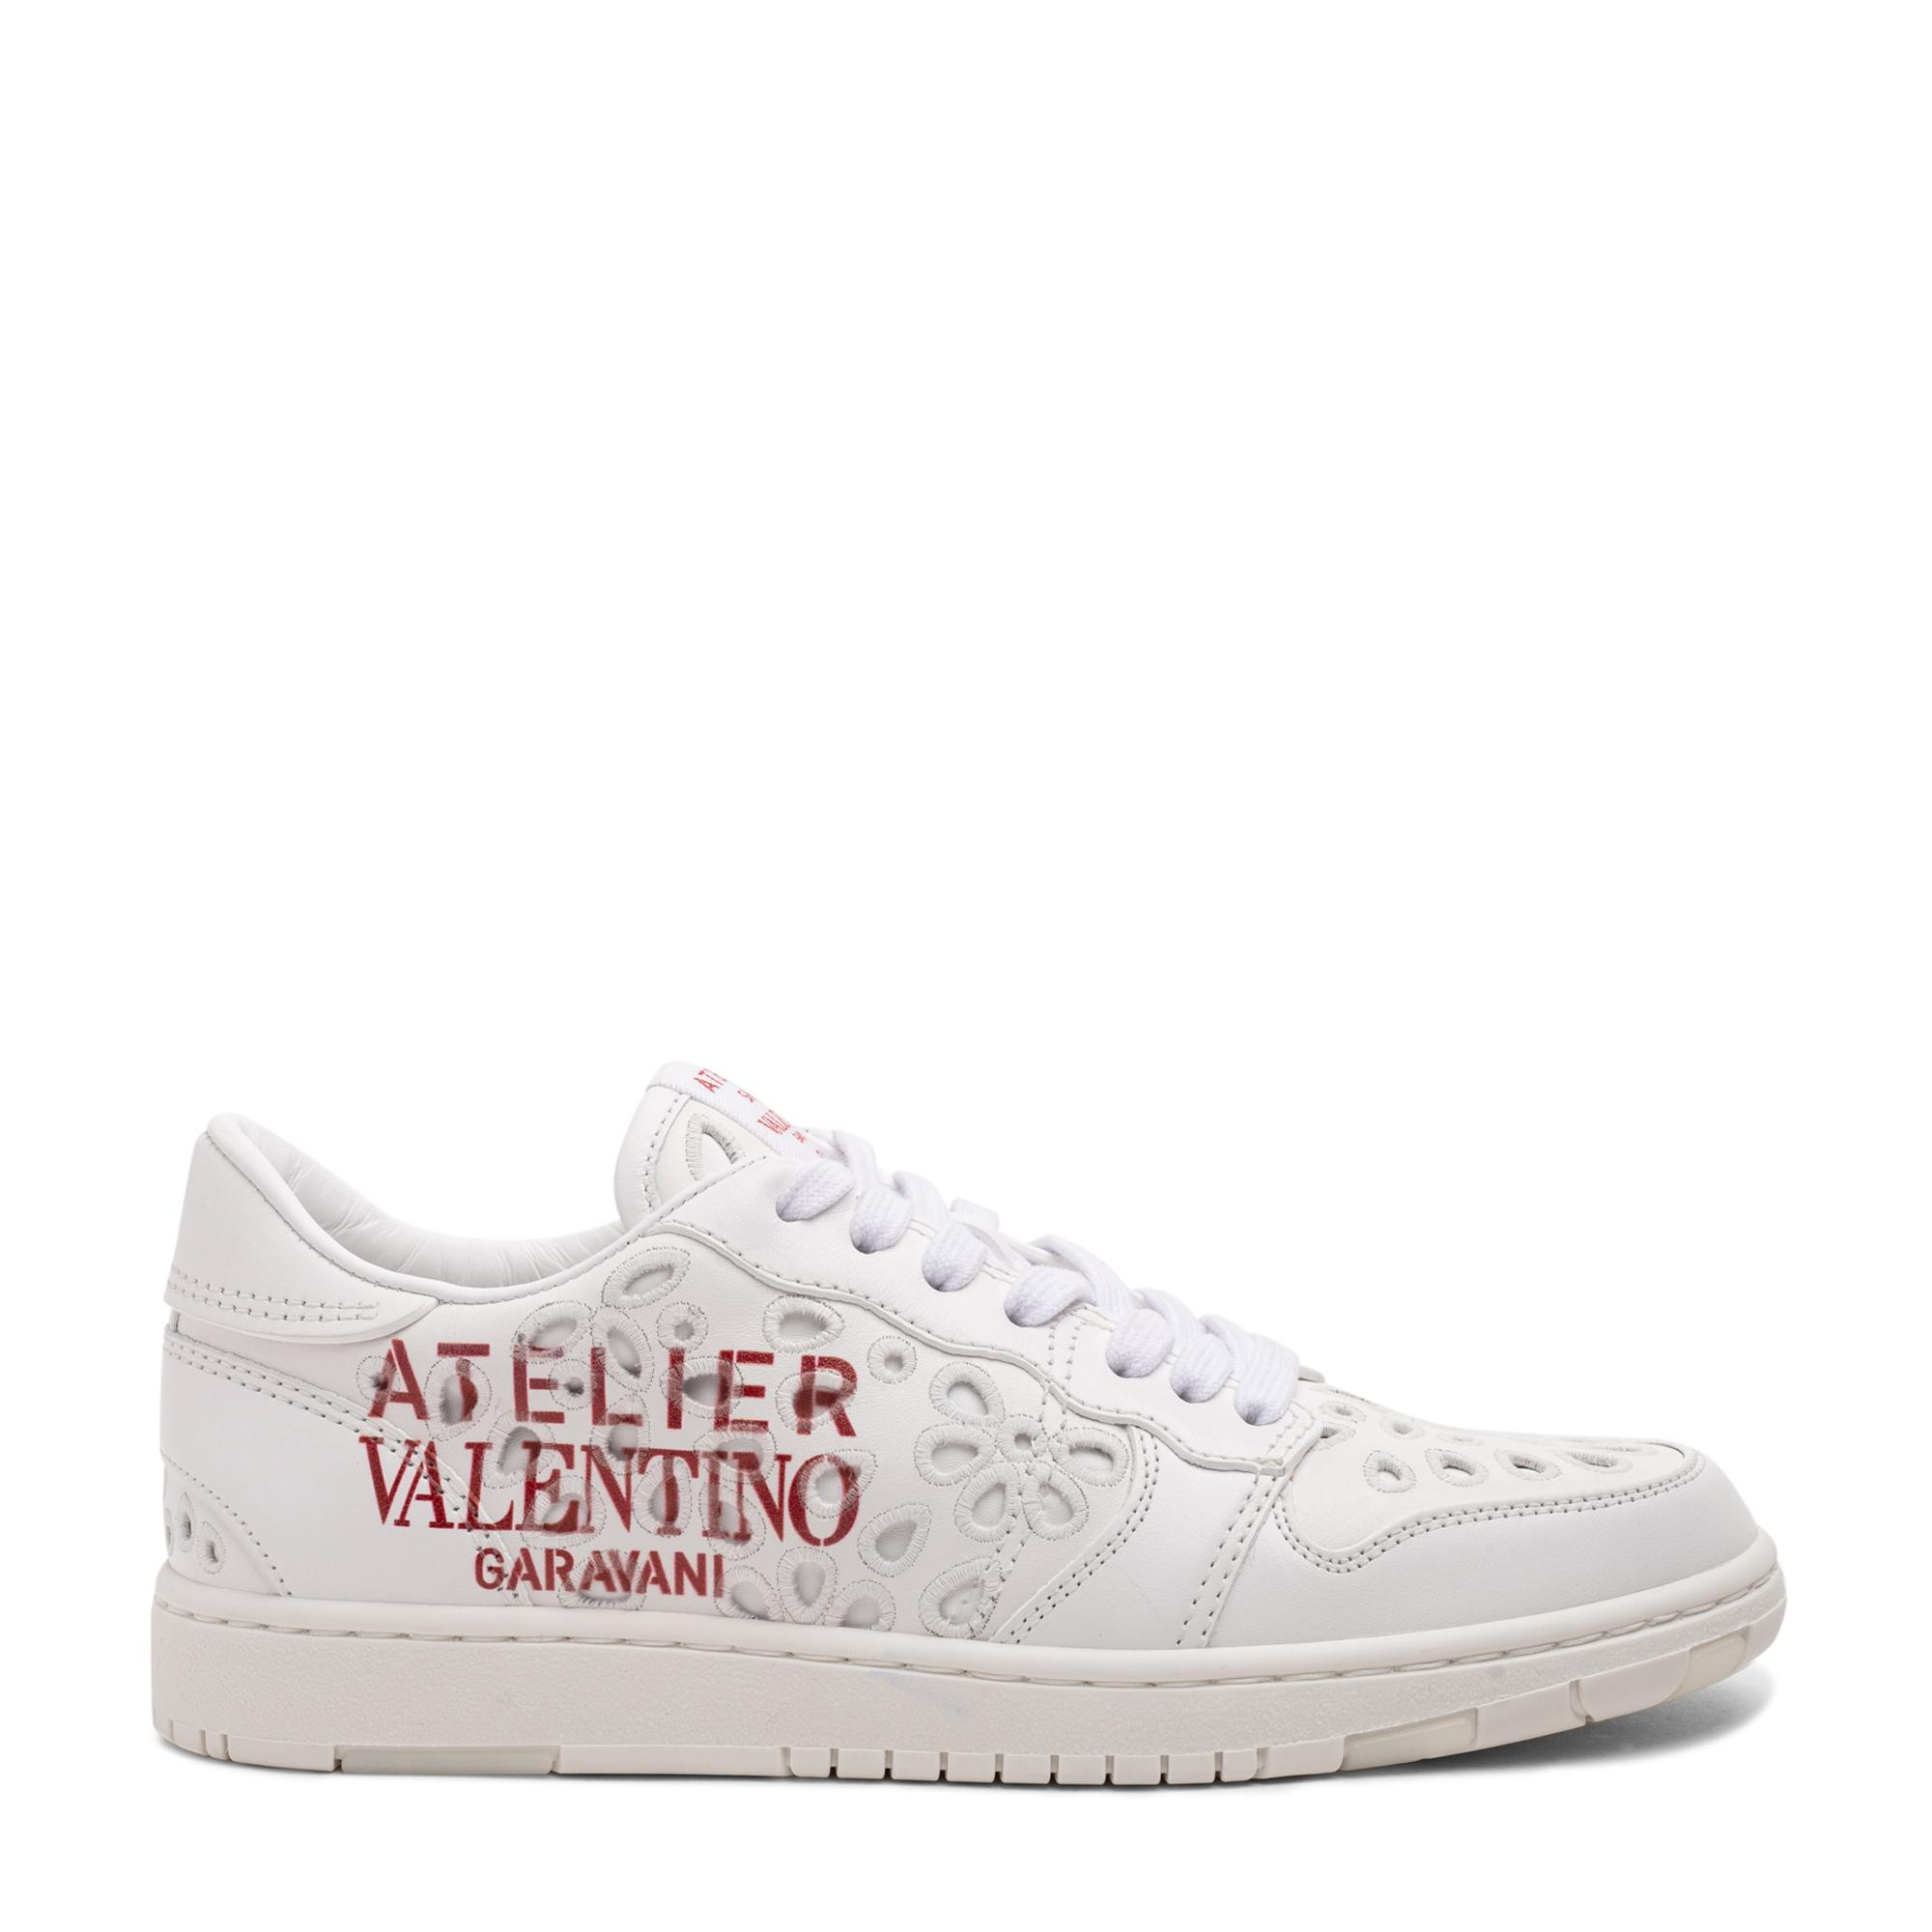 Atelier 08 San Gallo Edition low-top sneakers